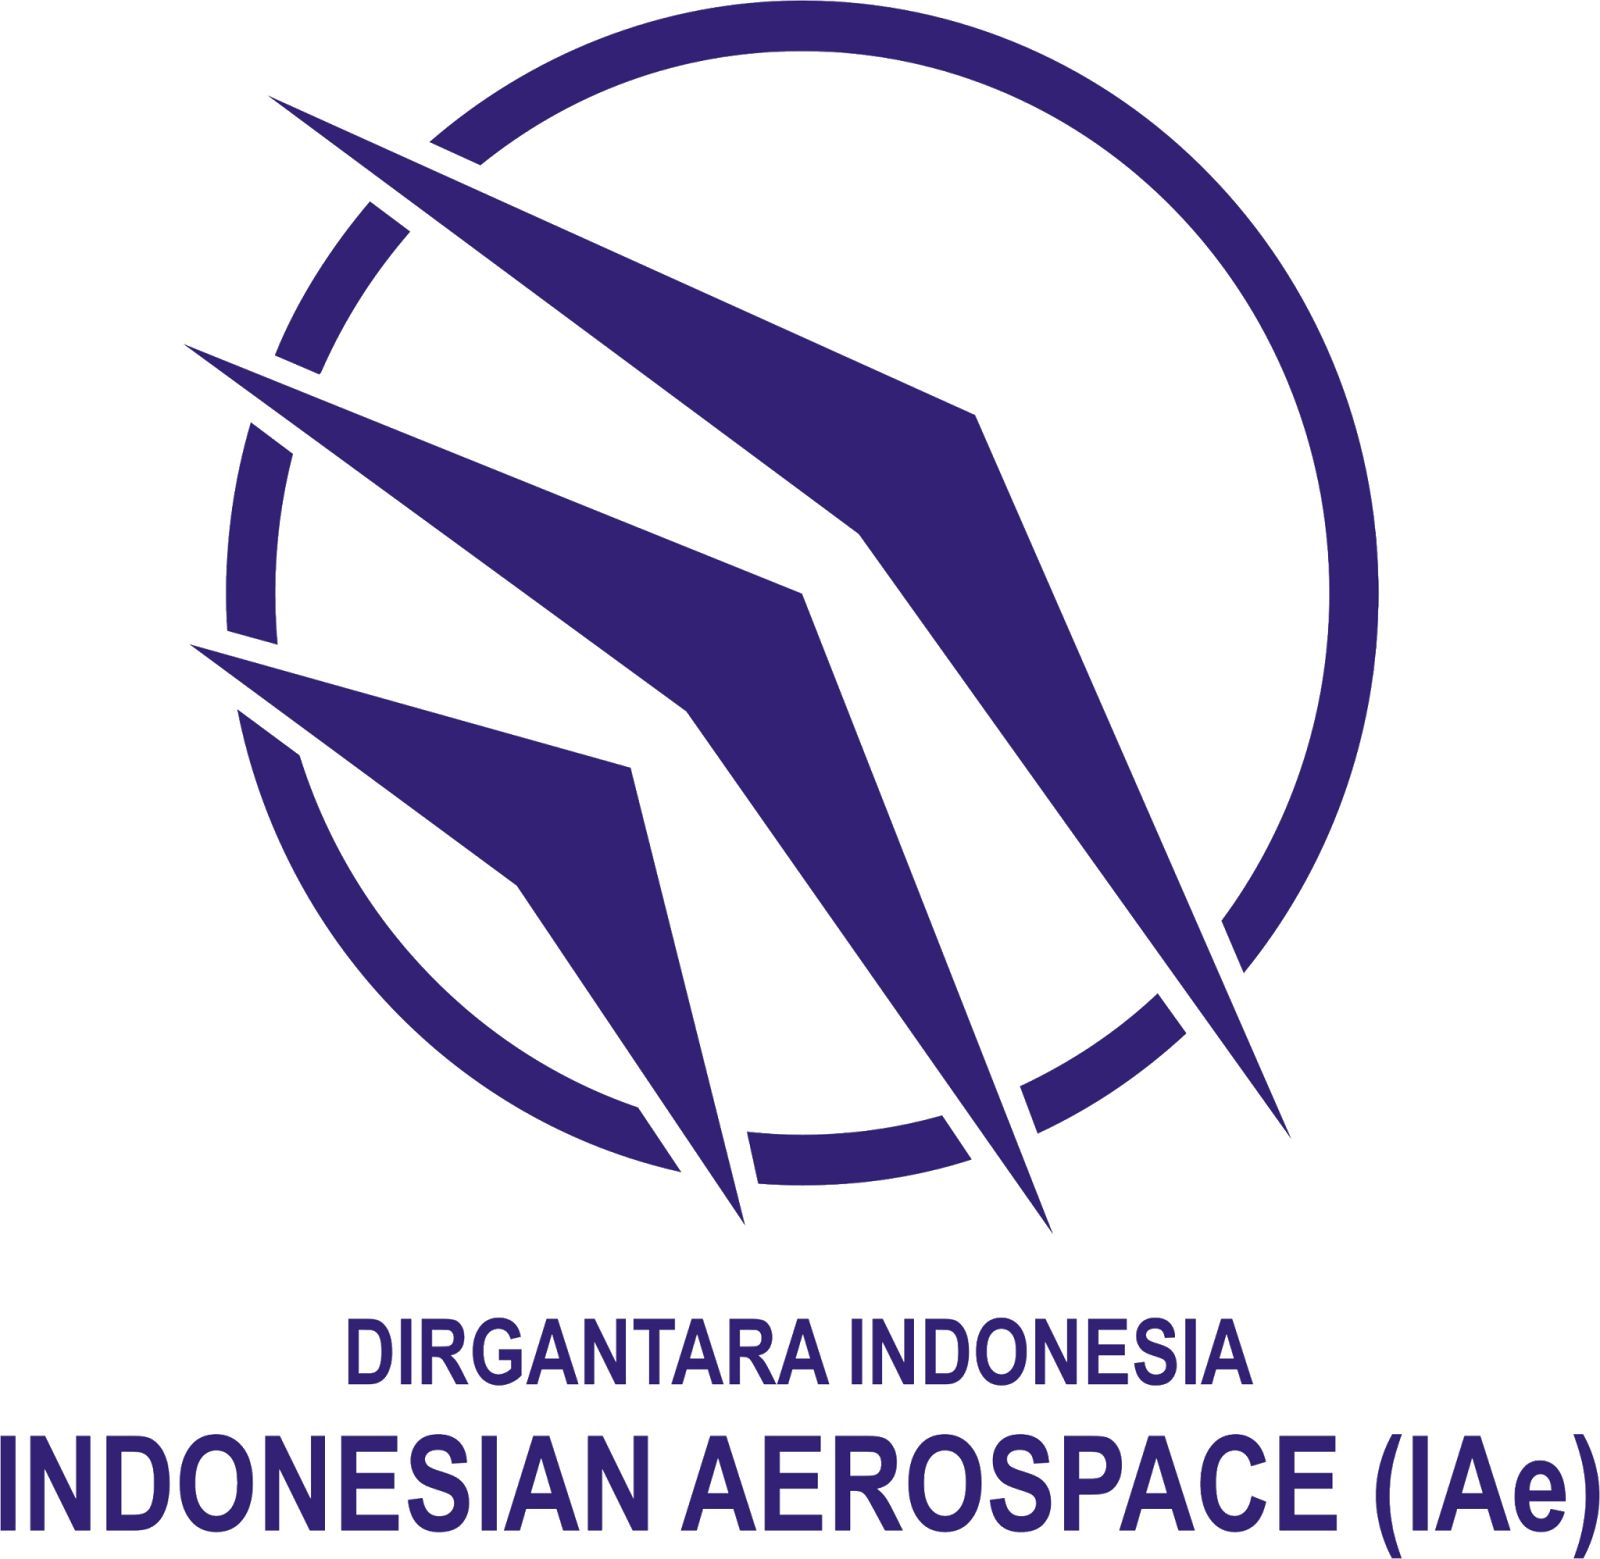 https://www.indonesian-aerospace.com/